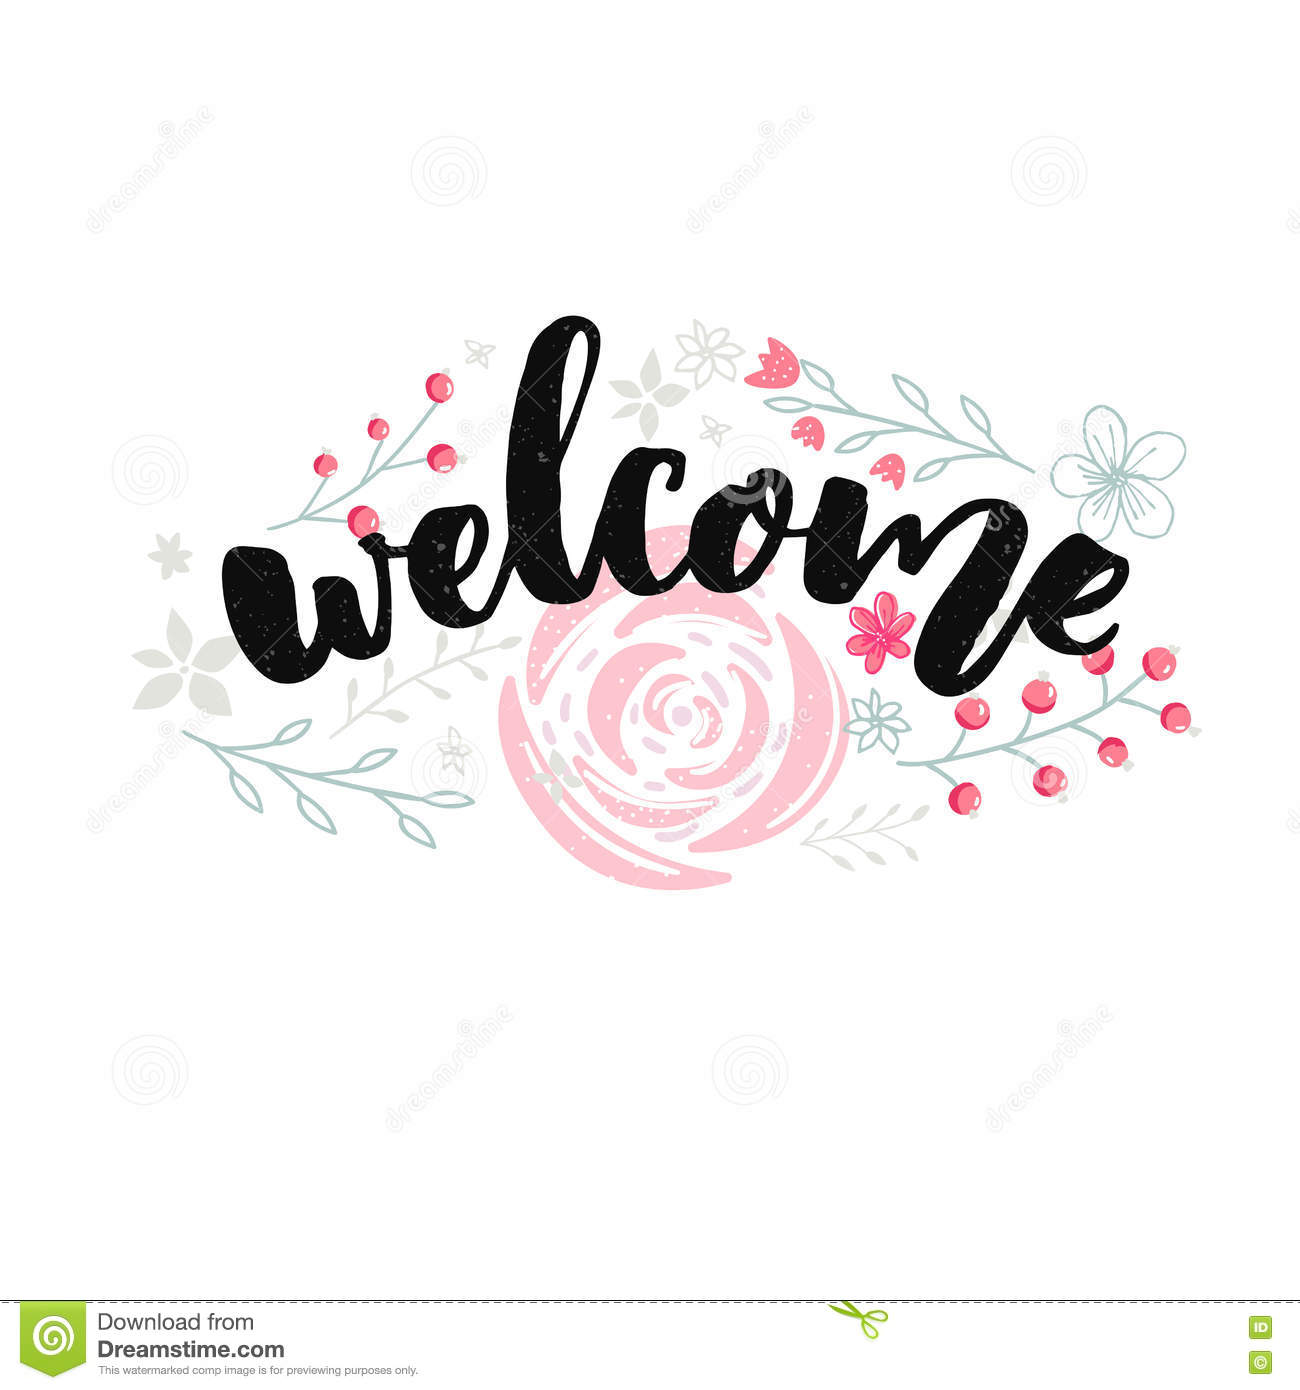 welcome-sign-design-brush-lettering-hand-drawn-pink-flowers-74972030.jpg